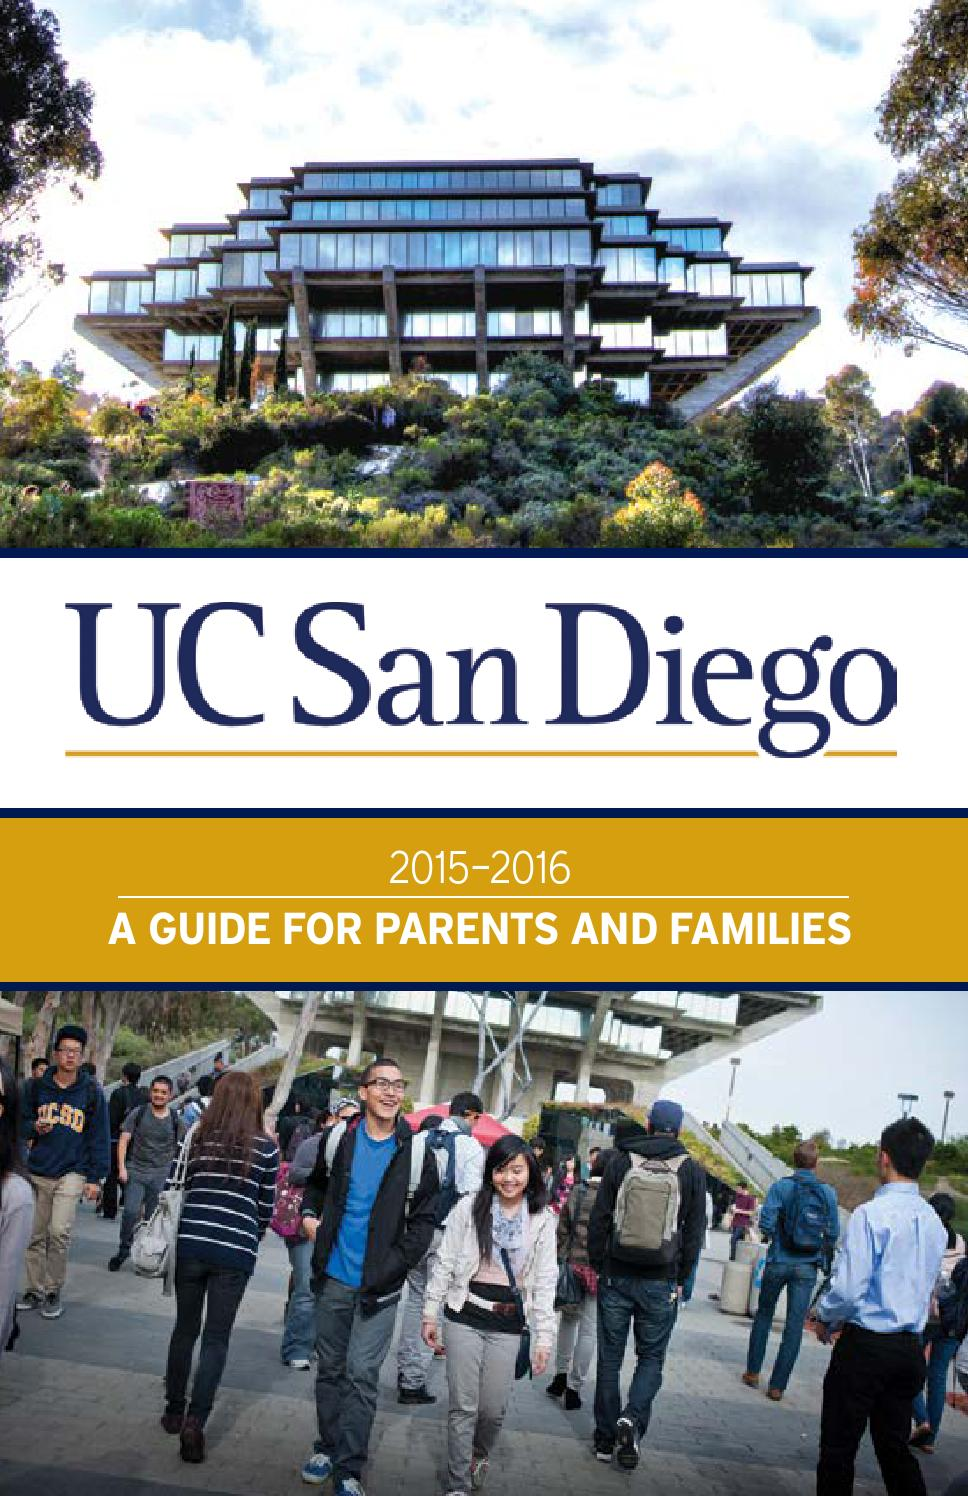 ucsd admissions essay Check out where uc san diego students are getting into medical personal essay allopathic medicine: medical school admissions data uc san diego allopathic.